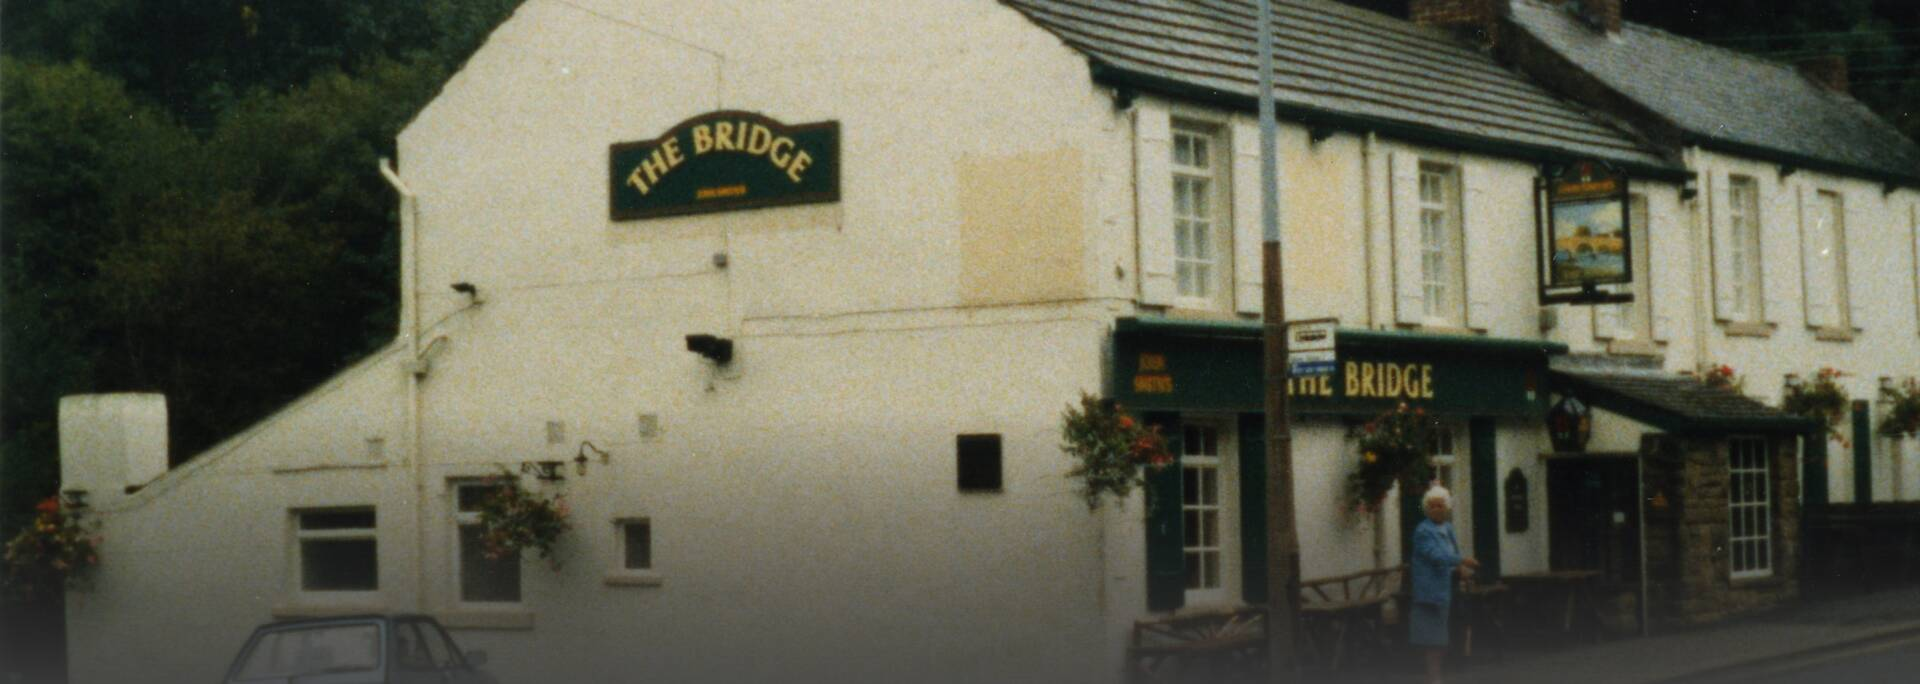 The Bridge Inn, 1989 Sheffield in Bloom